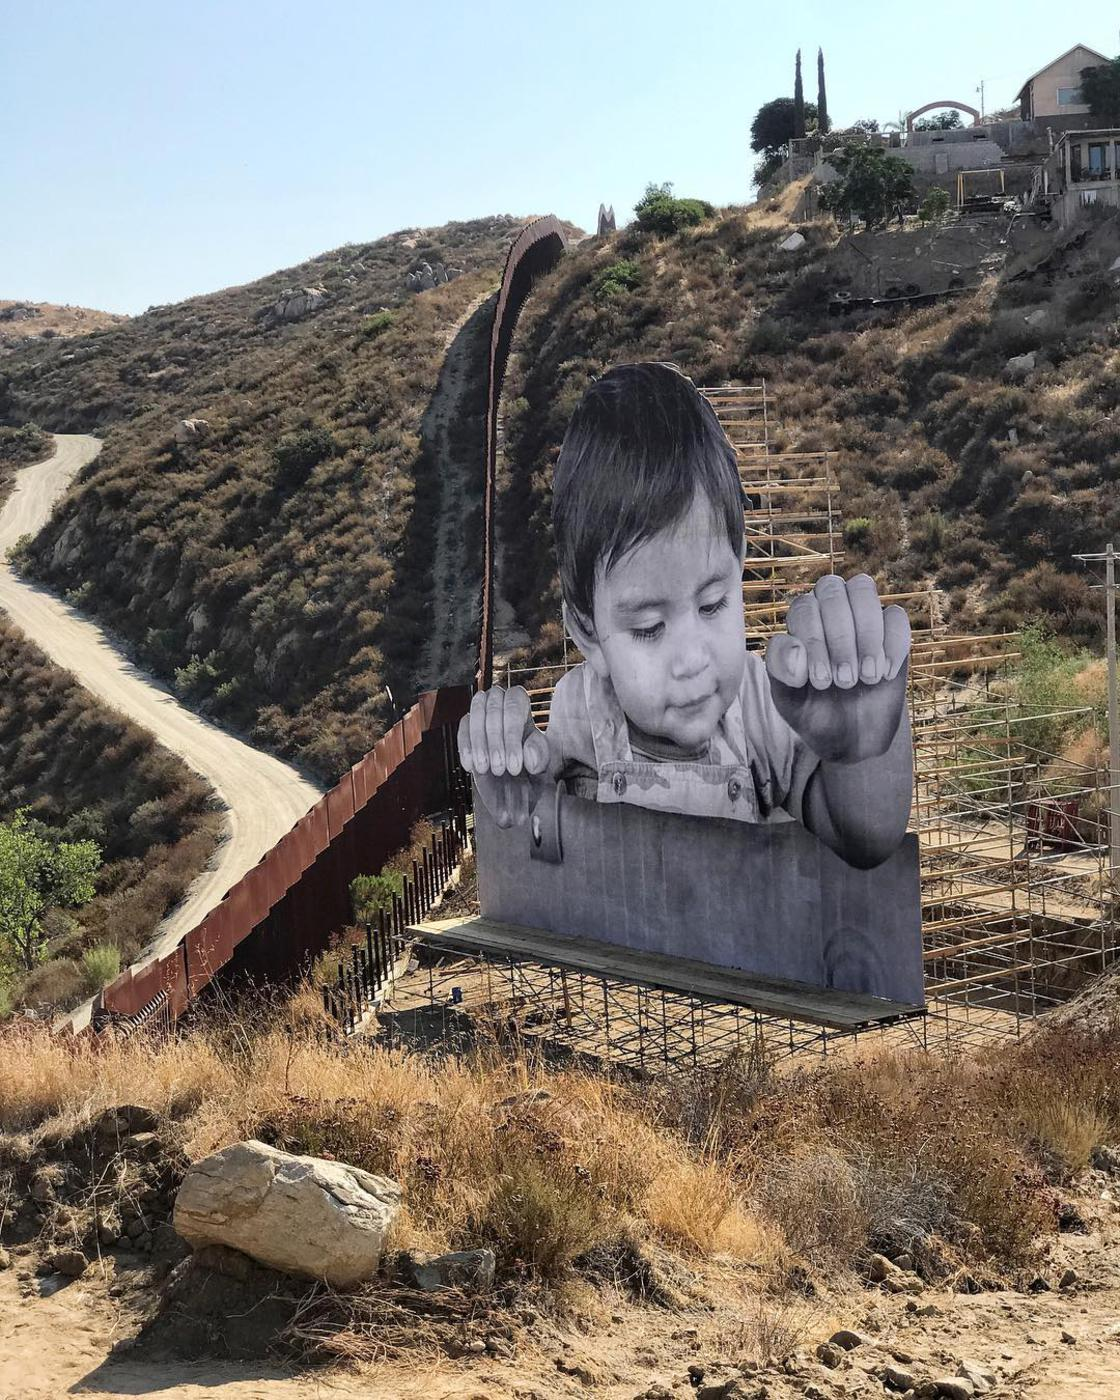 JR organized a giant picnic on the border between the United States and Mexico